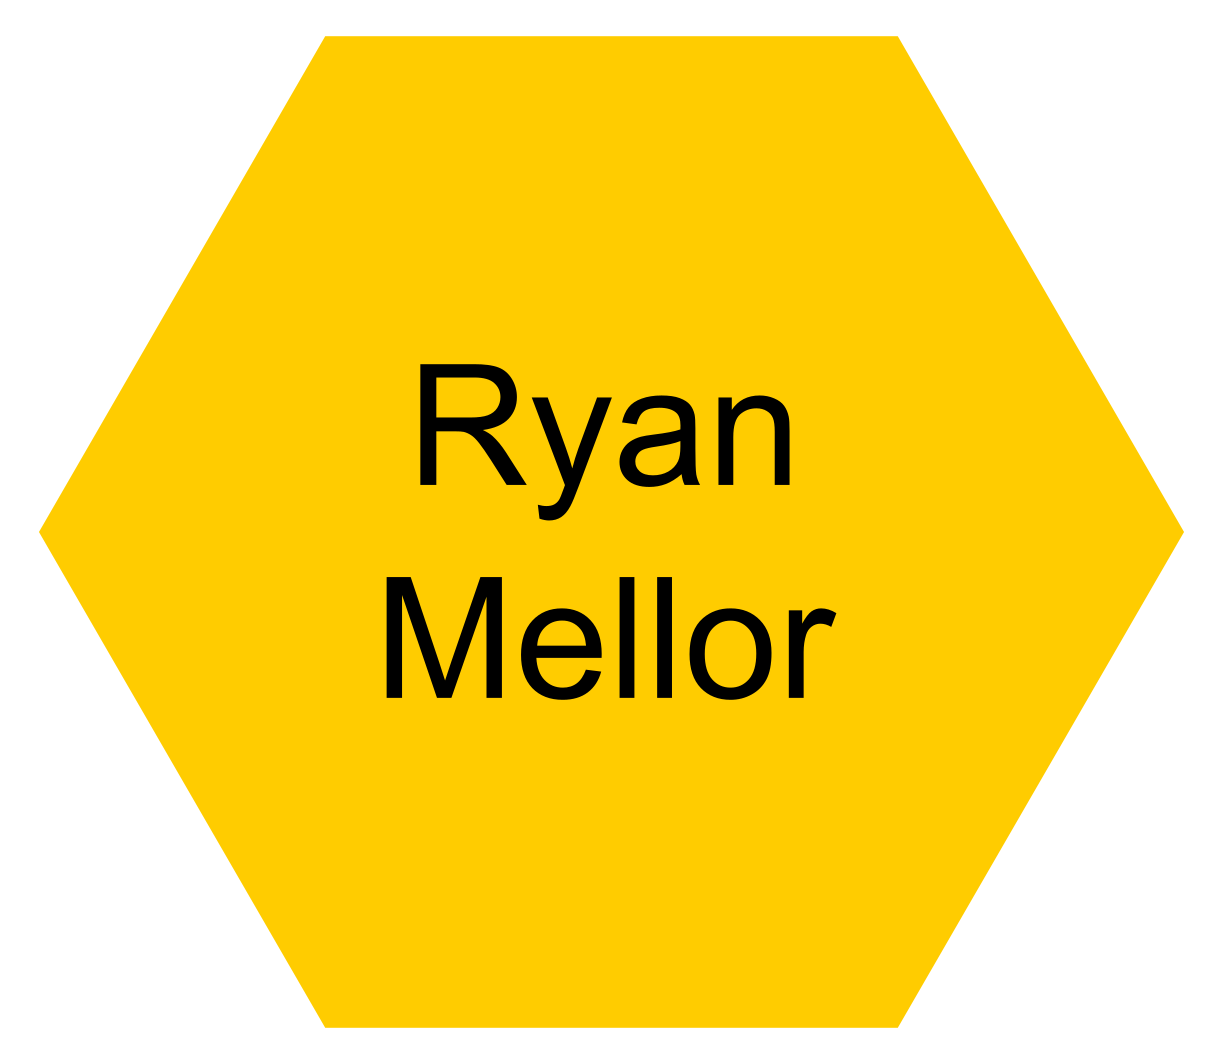 Ryan Mellor (UCL School of Pharmacy: Laboratory Technician) - Click this icon to reveal their contact details.